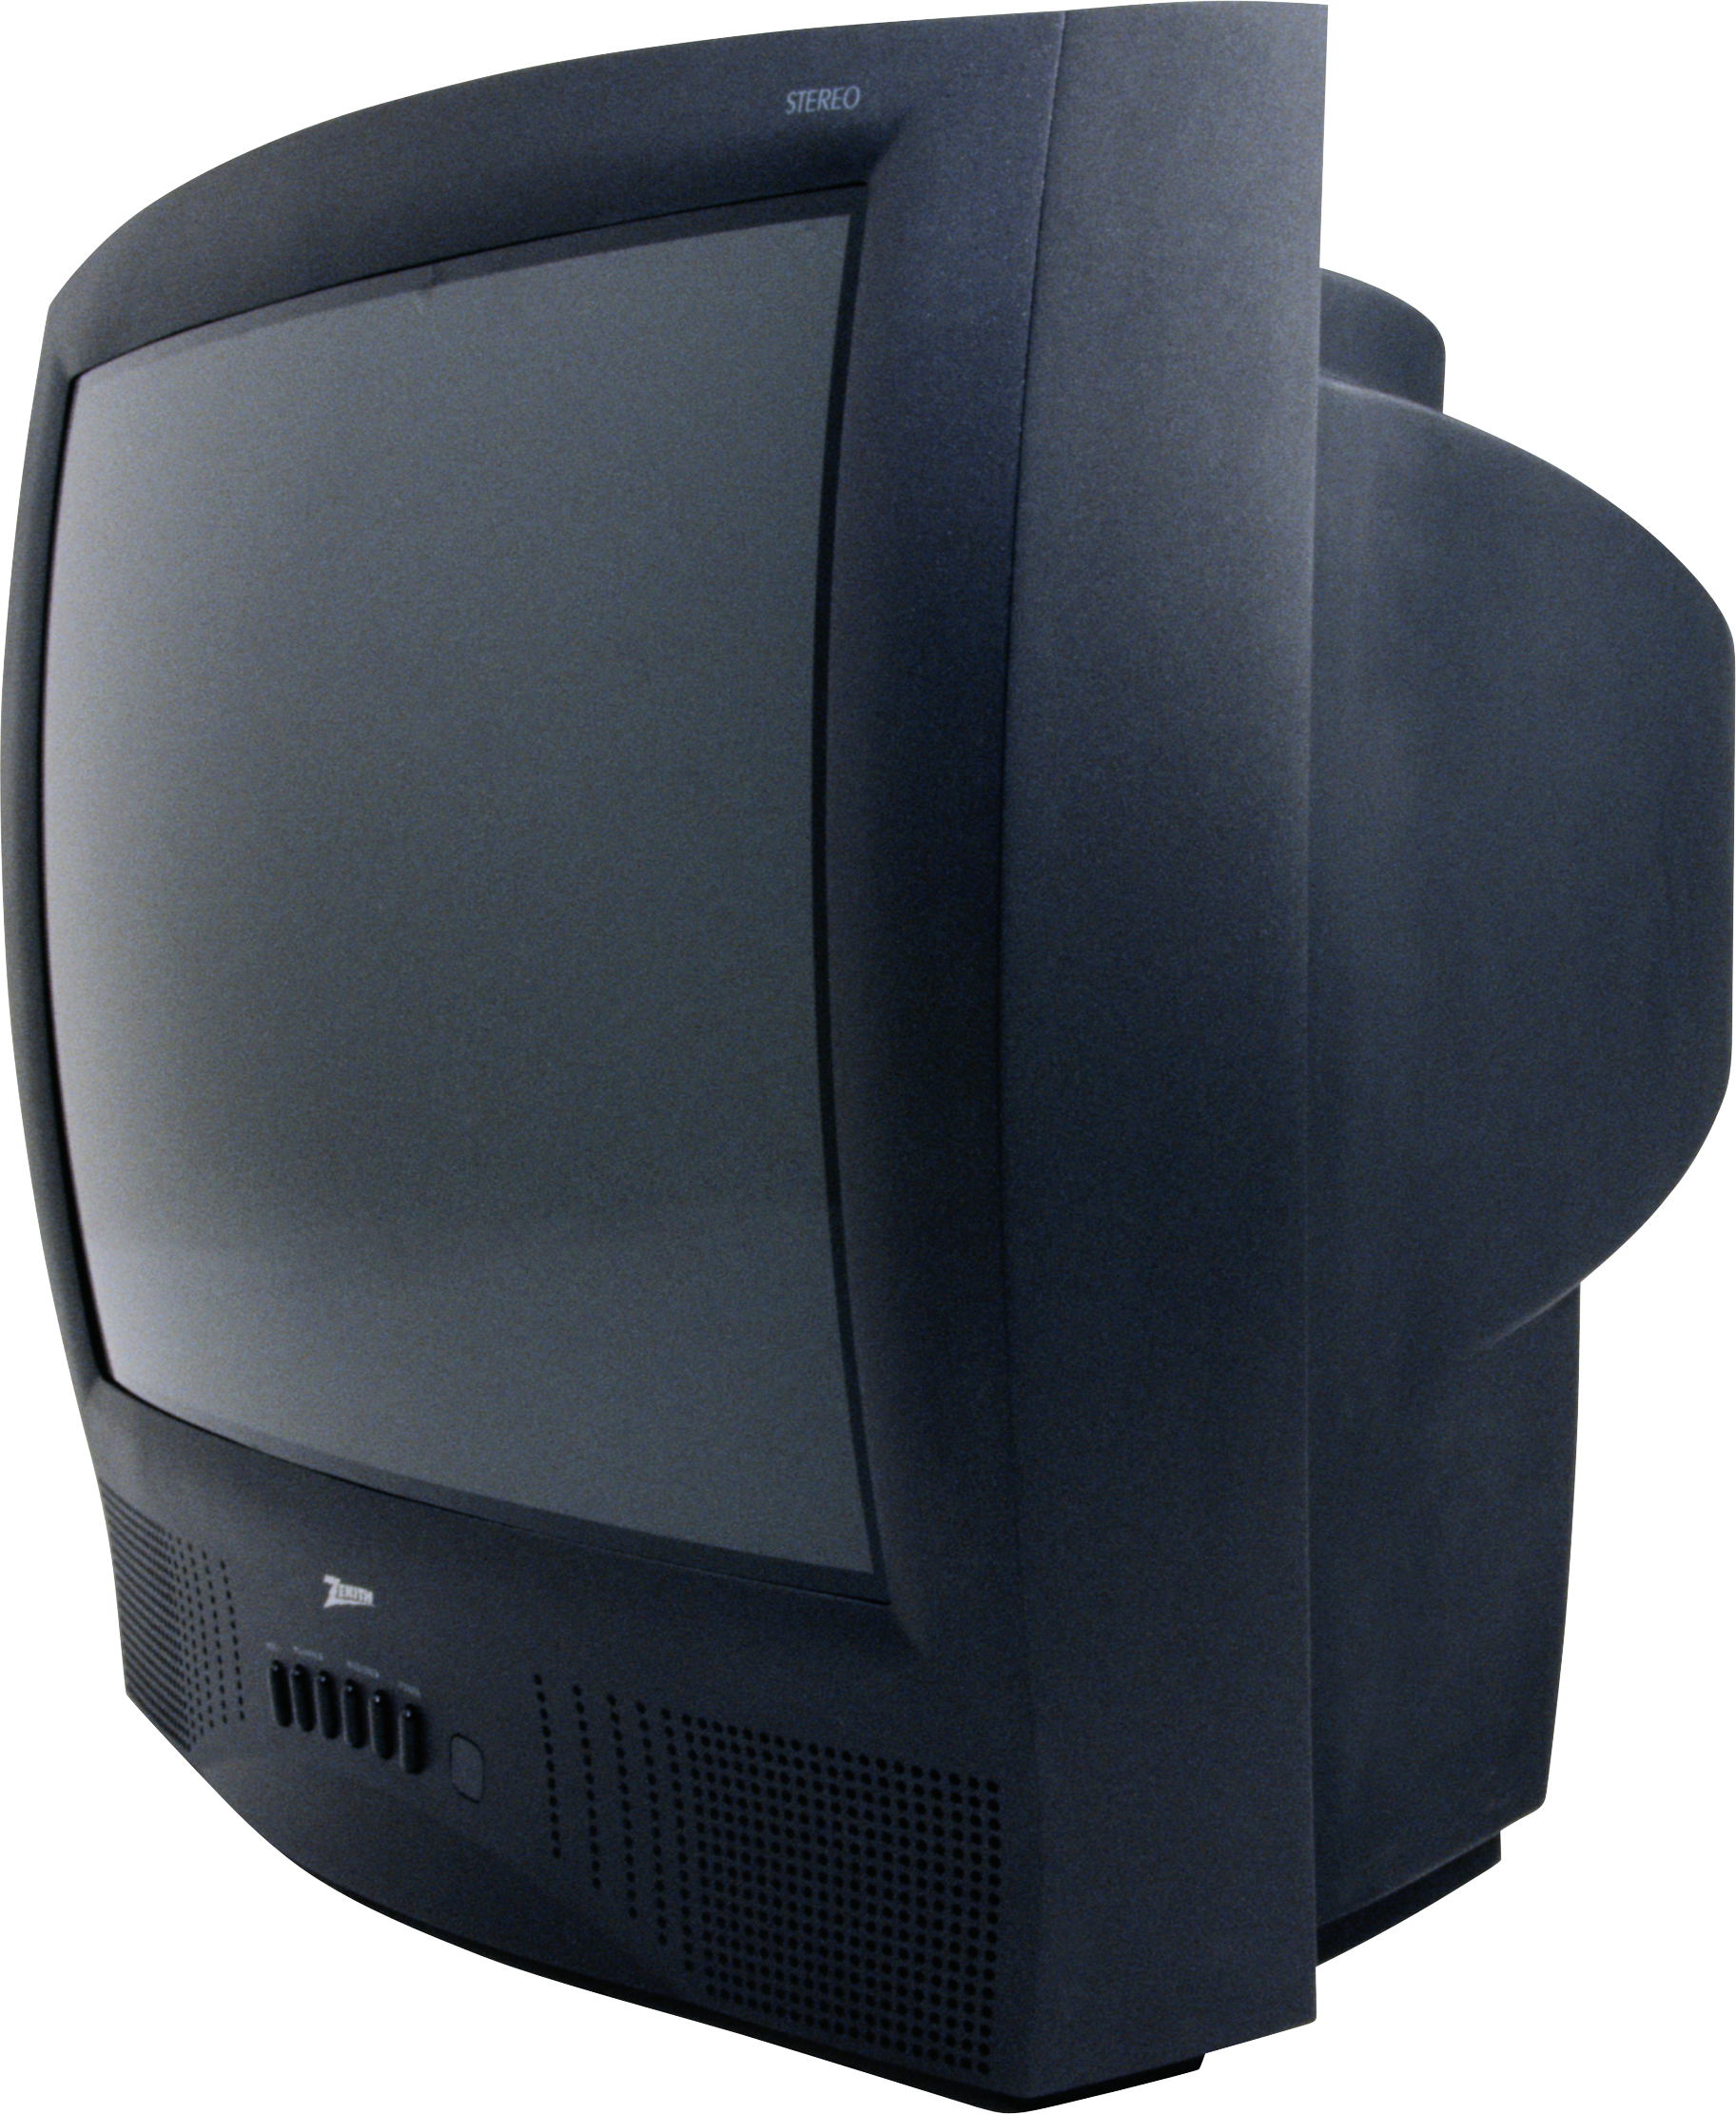 Old Television PNG Image - PurePNG | Free transparent CC0 ...